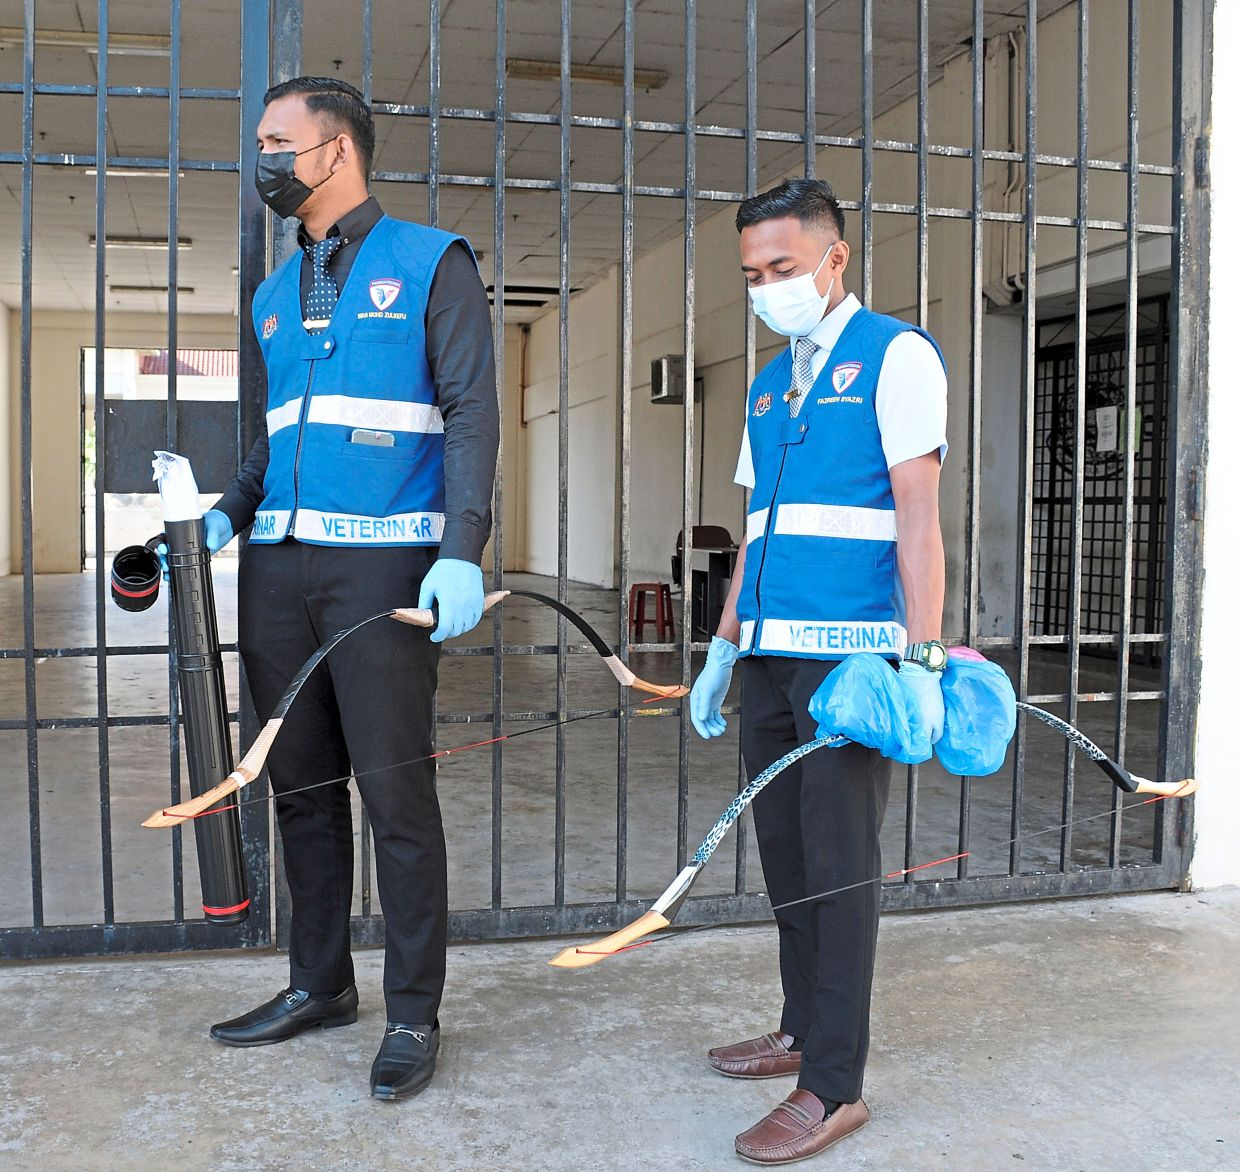 Deadly weapons: Veterinary Services officers with bows belonging to the suspects and the arrows in a black tube (pic, below) in Alor Setar. — G.C. TAN/The Star